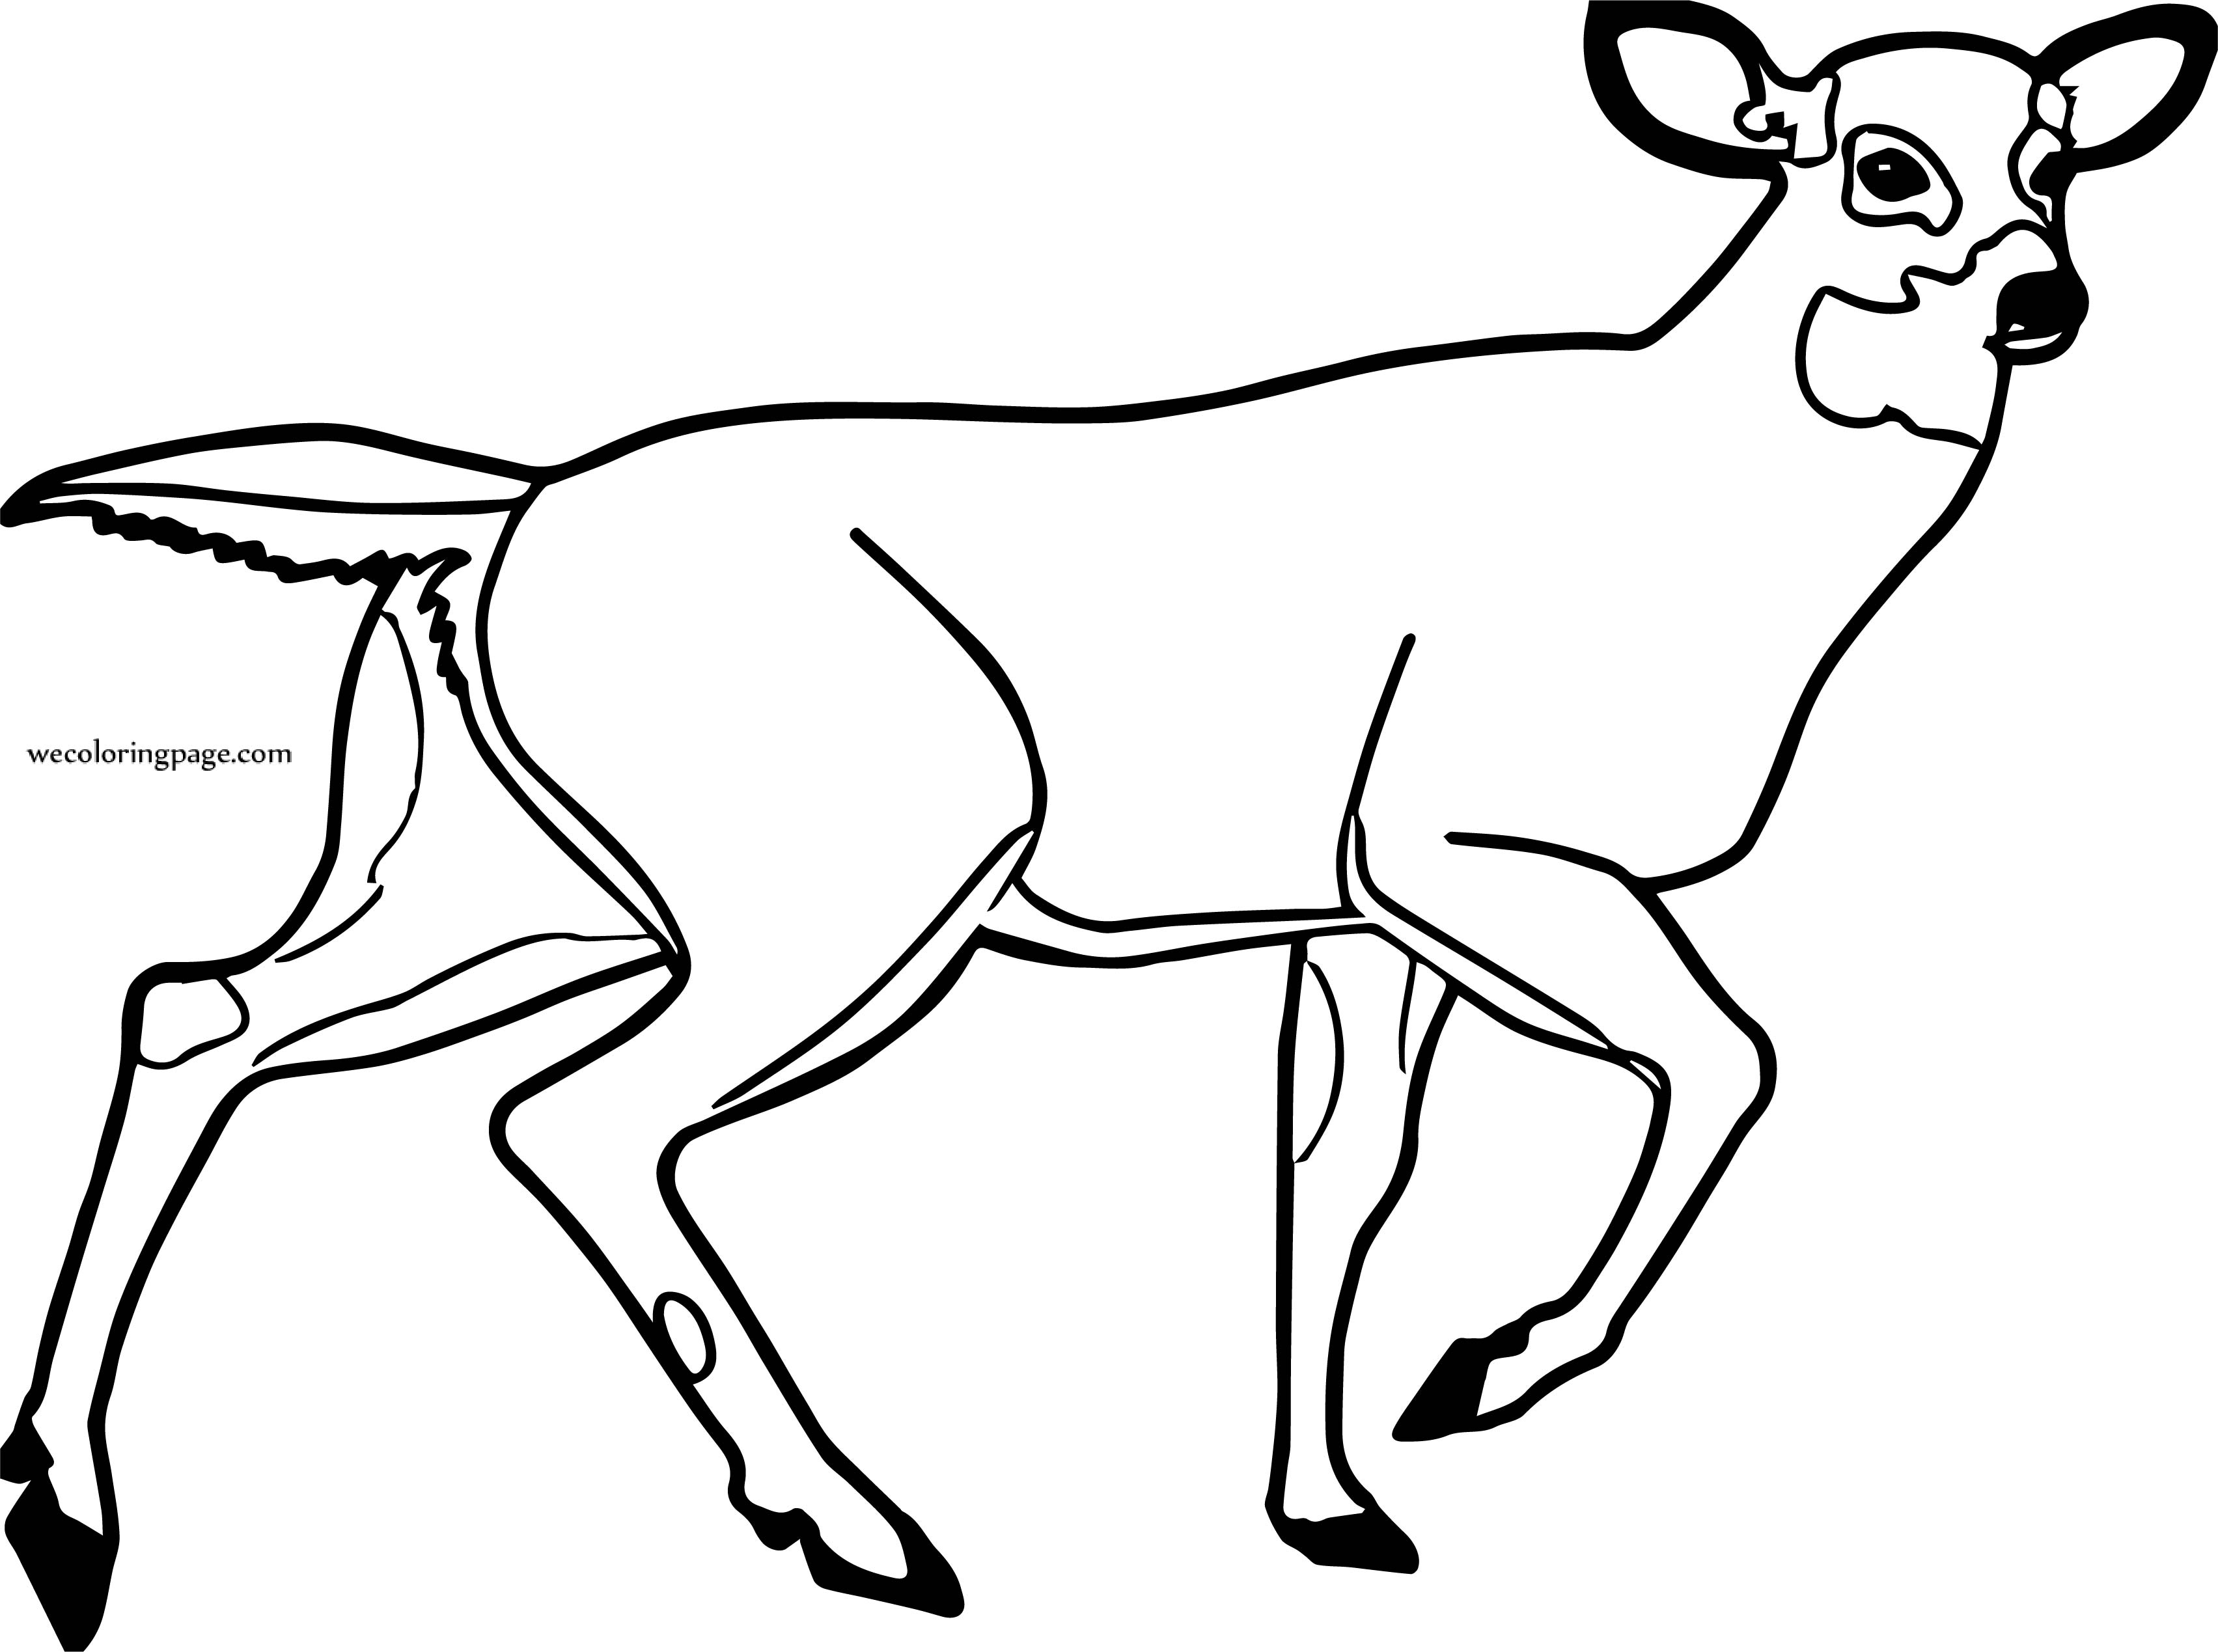 Deer Clip Art Black And White Free Images Coloring Page